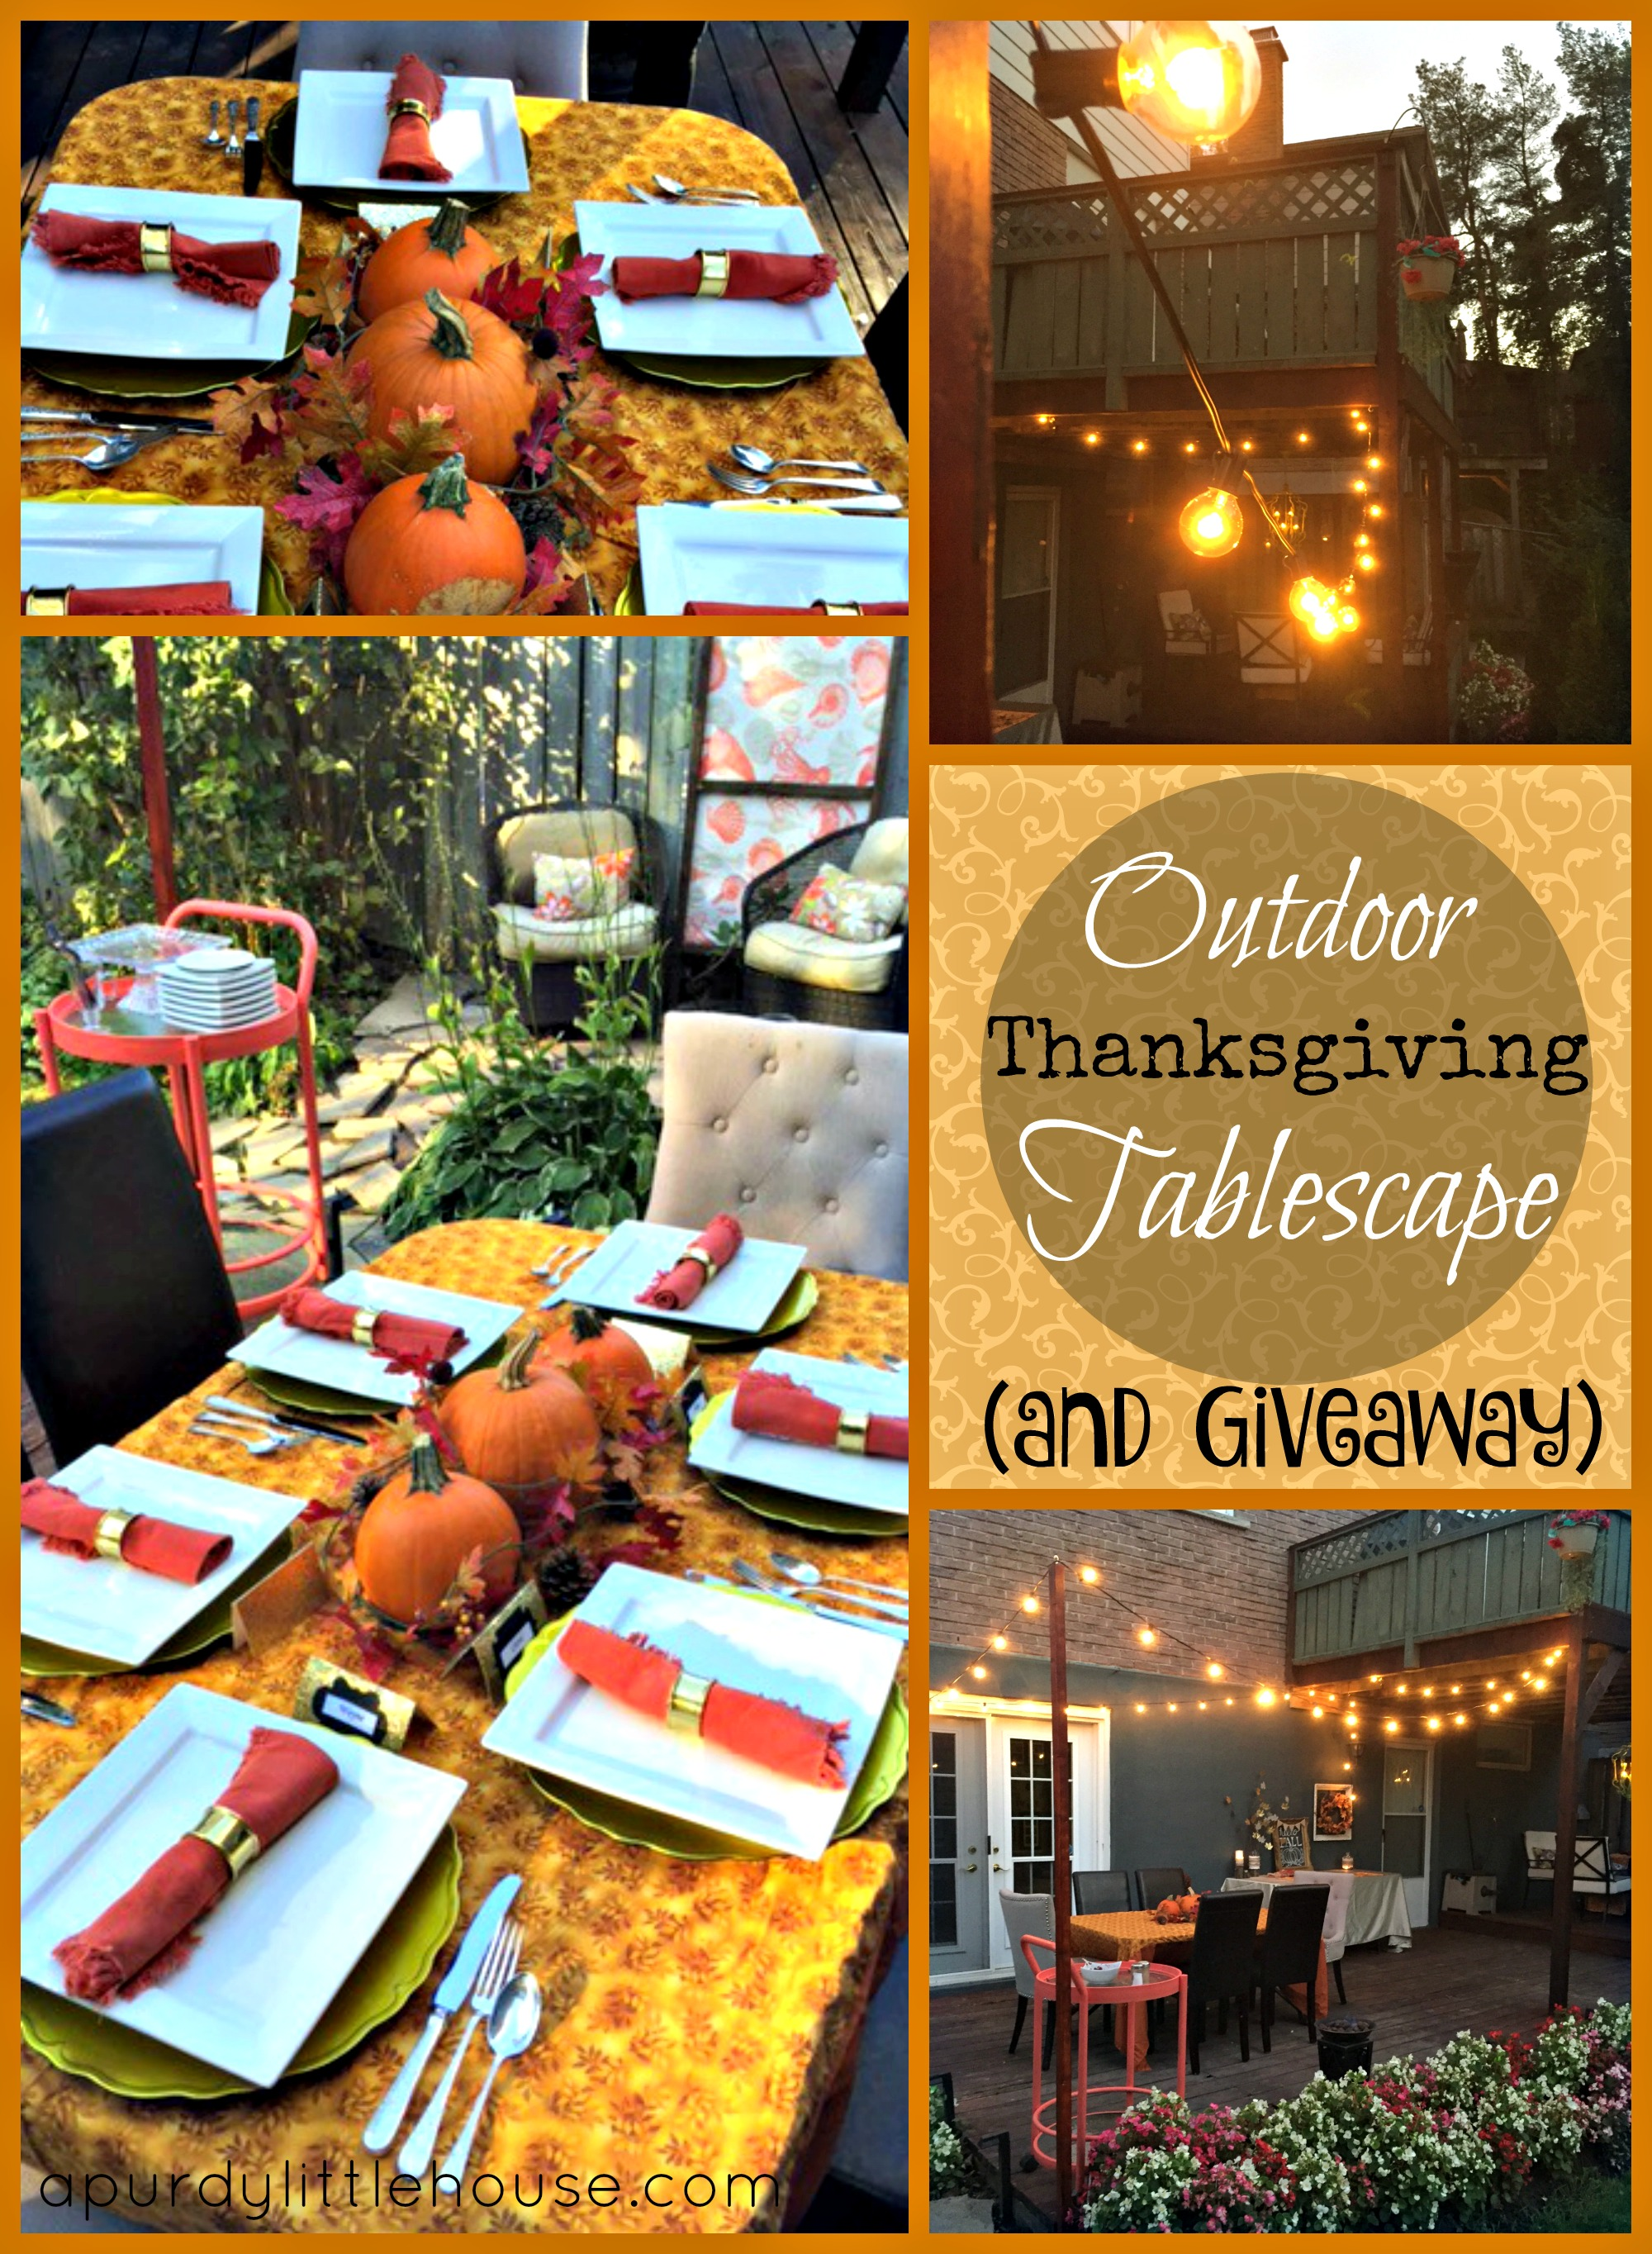 Outdoor Thanksgiving Tablescape